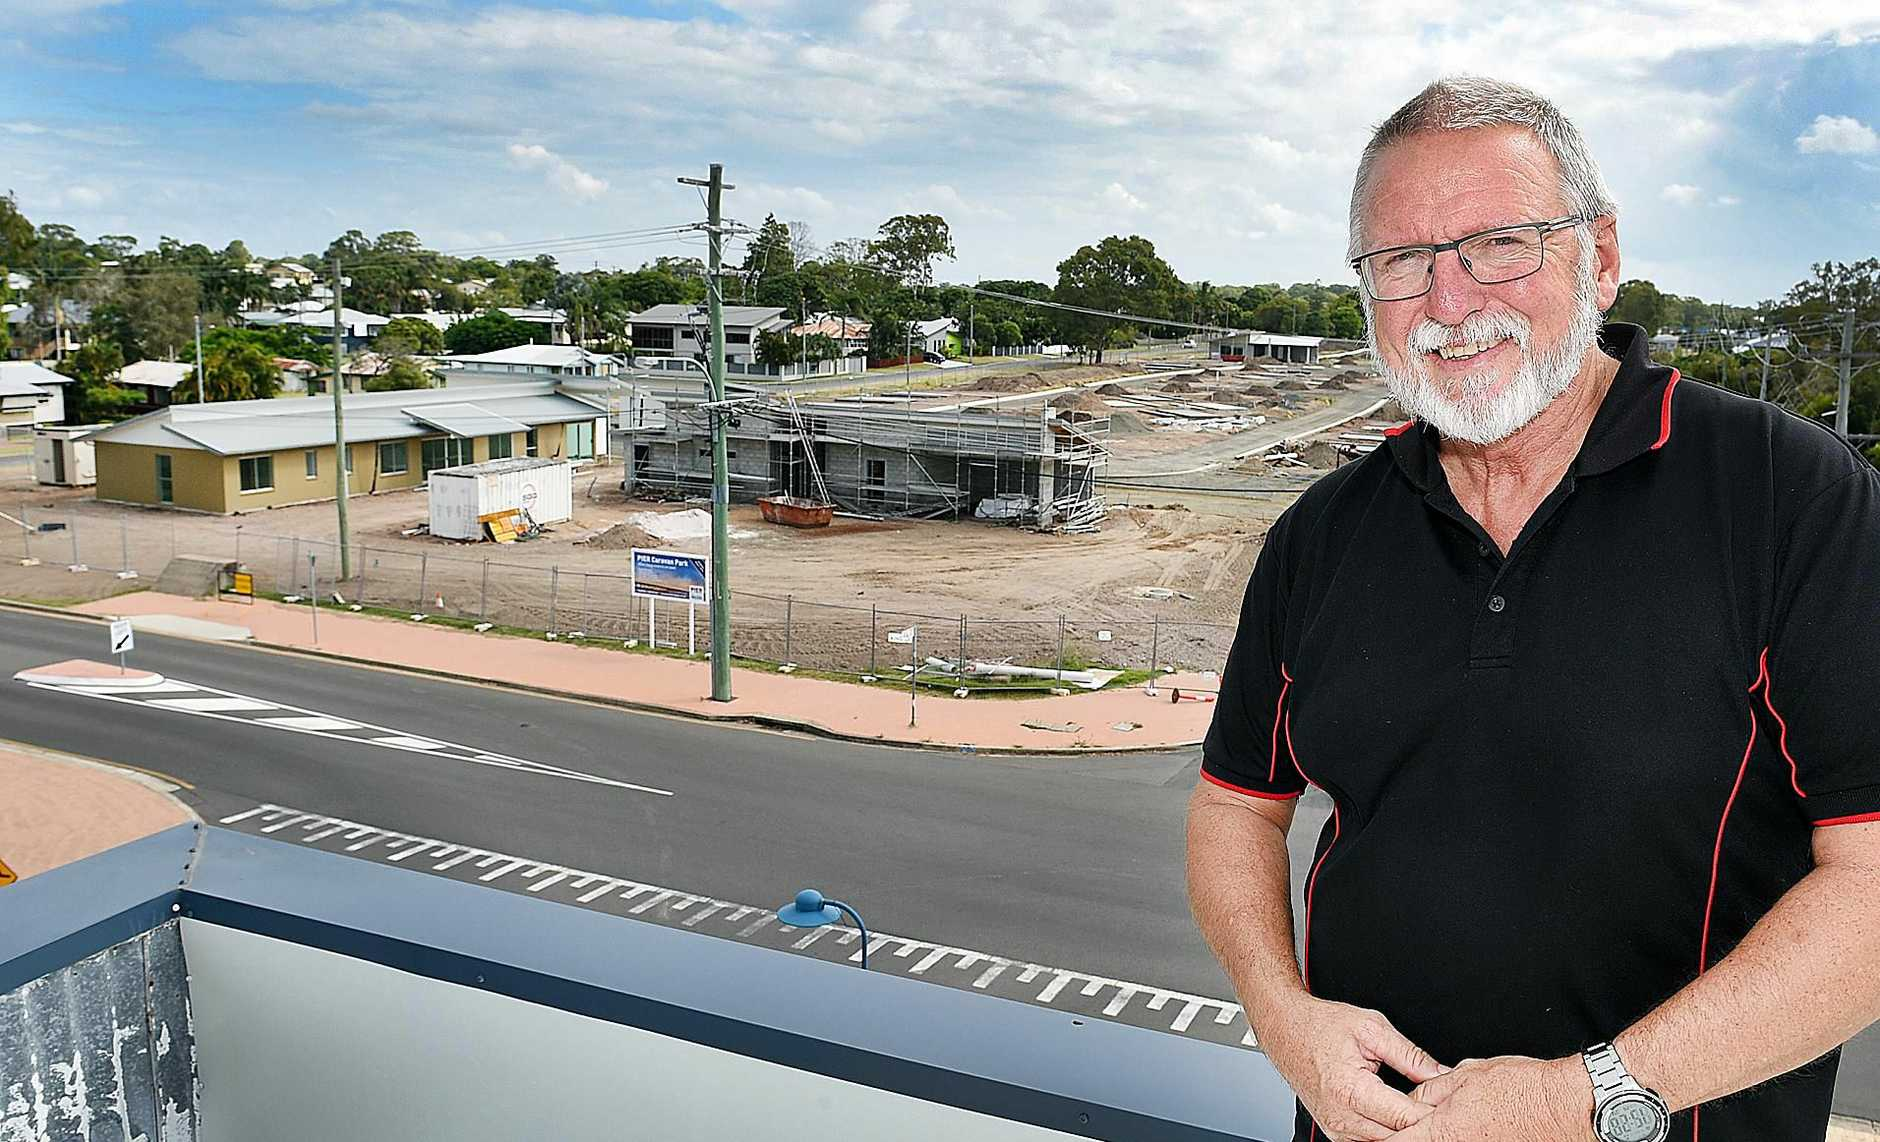 Ed Gibson - CEO at The Boat Club with a birdseye view of the new caravan park being built at Urangan across the road from The Sporties Club.